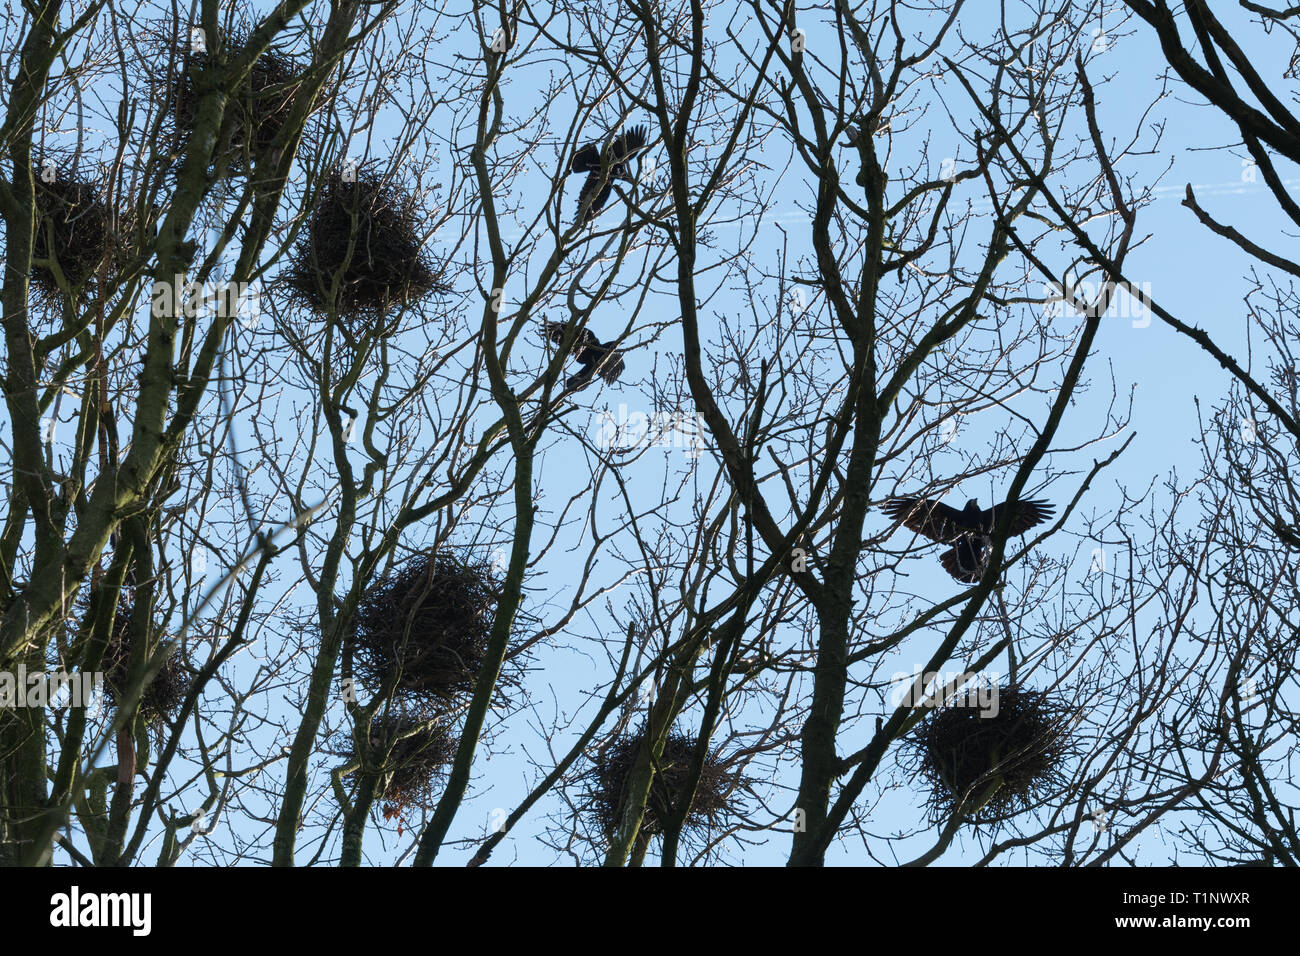 A rookery in the tops of trees during spring with rooks (Corvus frugilegus) flying around their nests. Bird colony in Hampshire, UK. - Stock Image